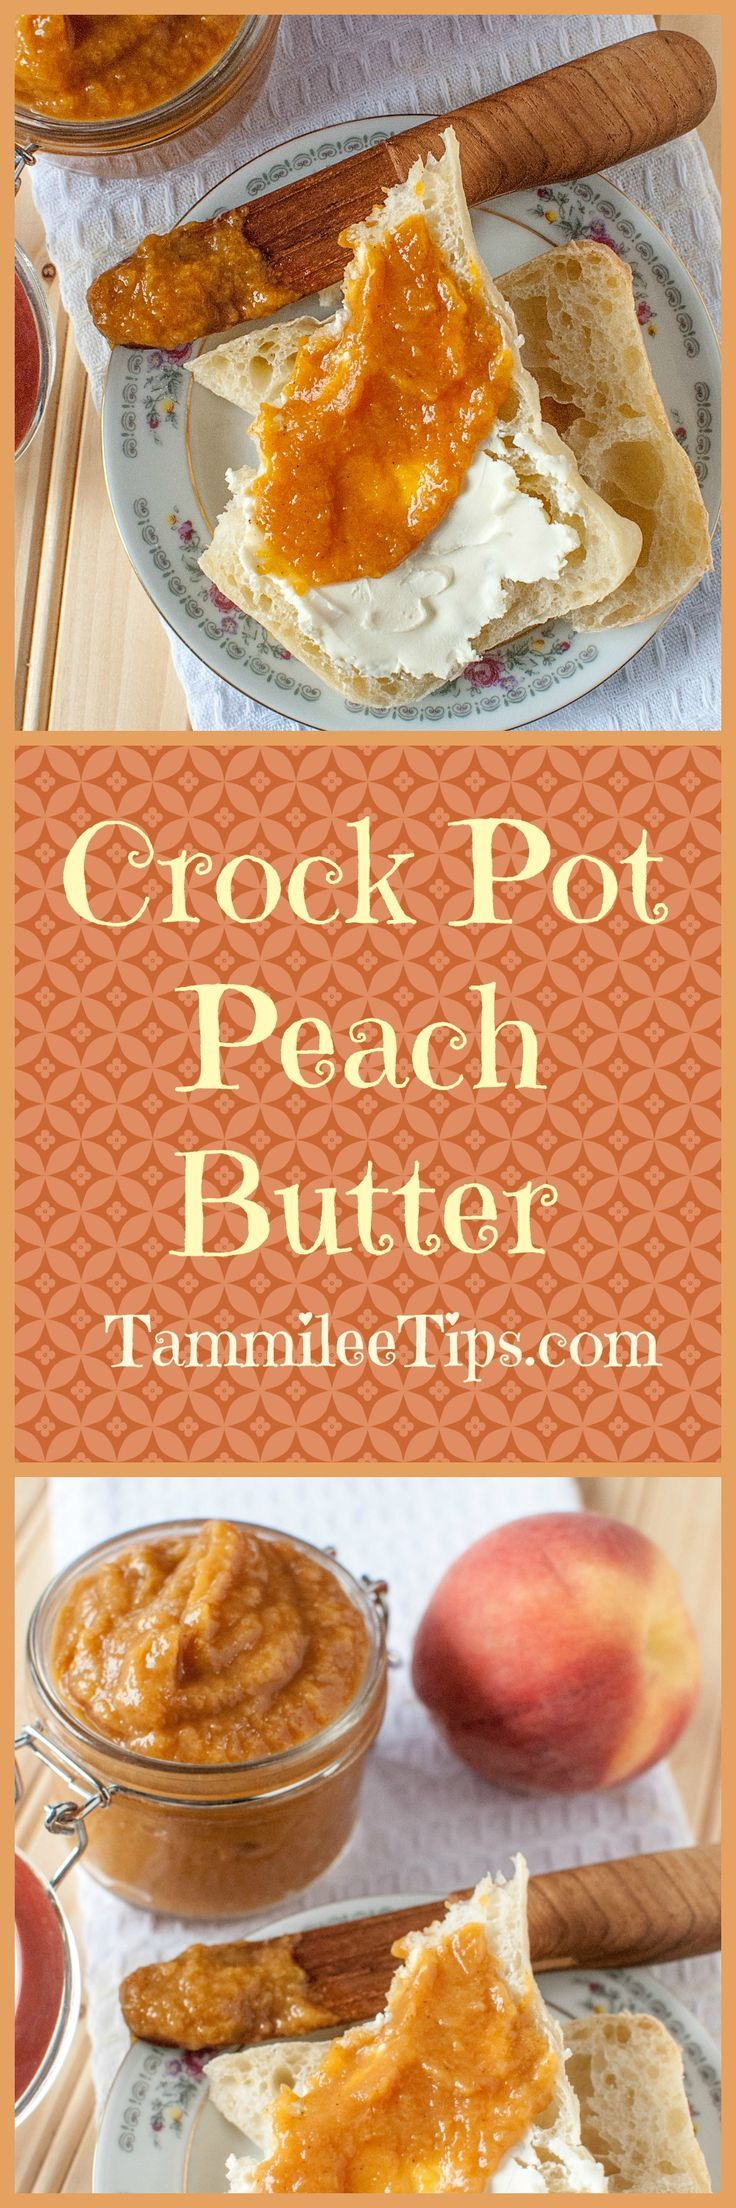 Crock Pot Peach Butter Recipe perfect for canning or enjoying fresh! This slow cooker recipe is so easy and you can easily make it a spiced peach if you want! Use your canning jars to make this into a great gift idea! This fresh peach recipe is beyond del